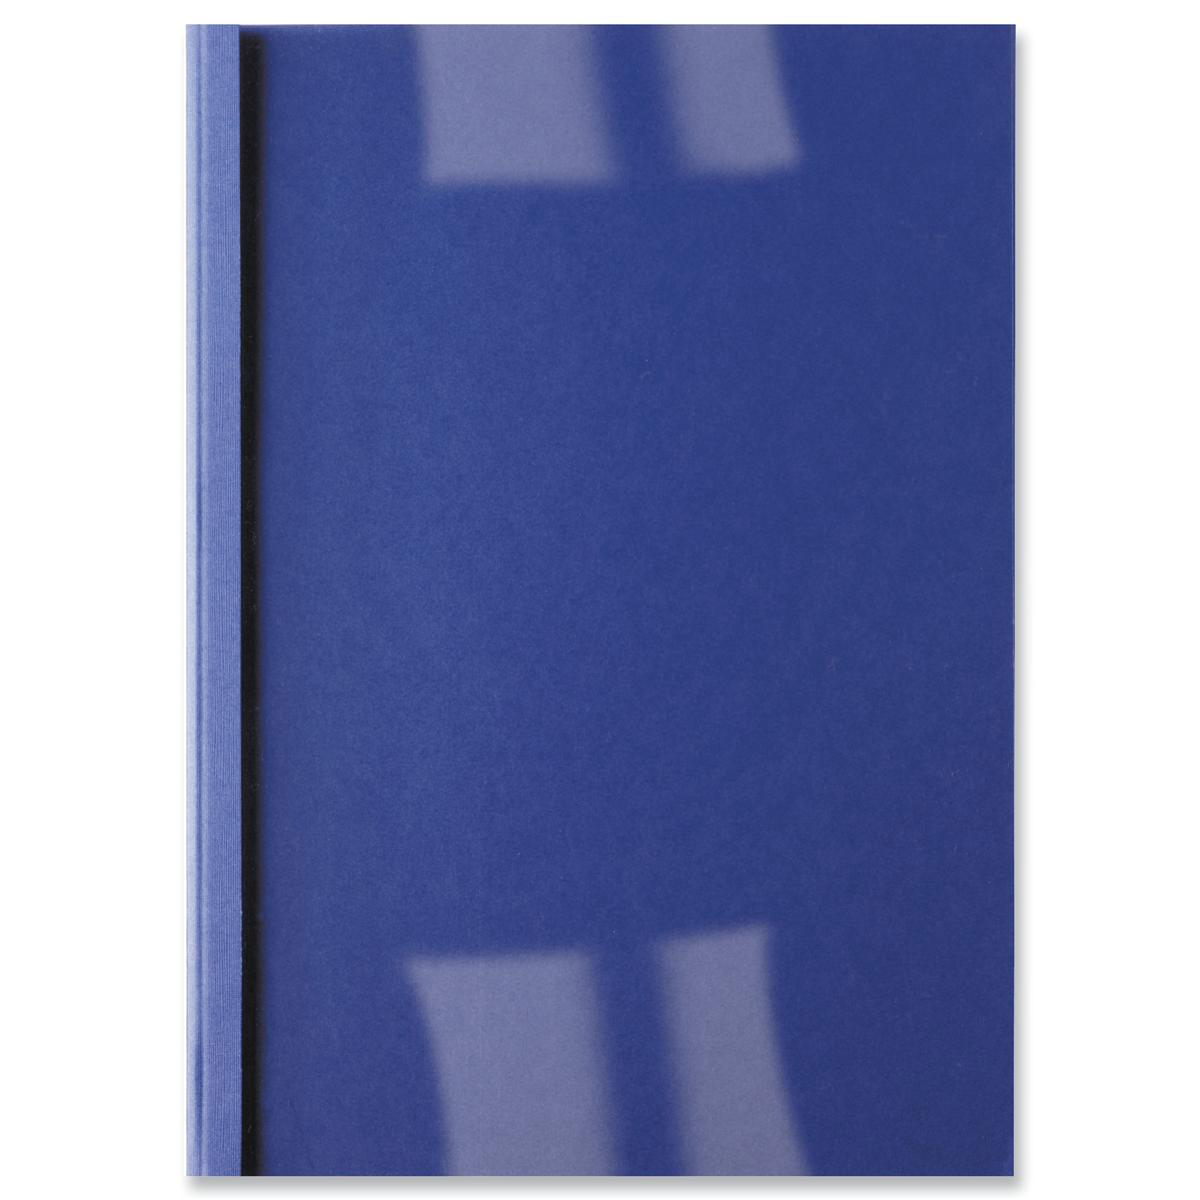 Thermal Bind Covers GBC Thermal Binding Covers 3mm Front PVC Clear Back Leathergrain A4 Royal Blue Ref IB451010 Pack 100